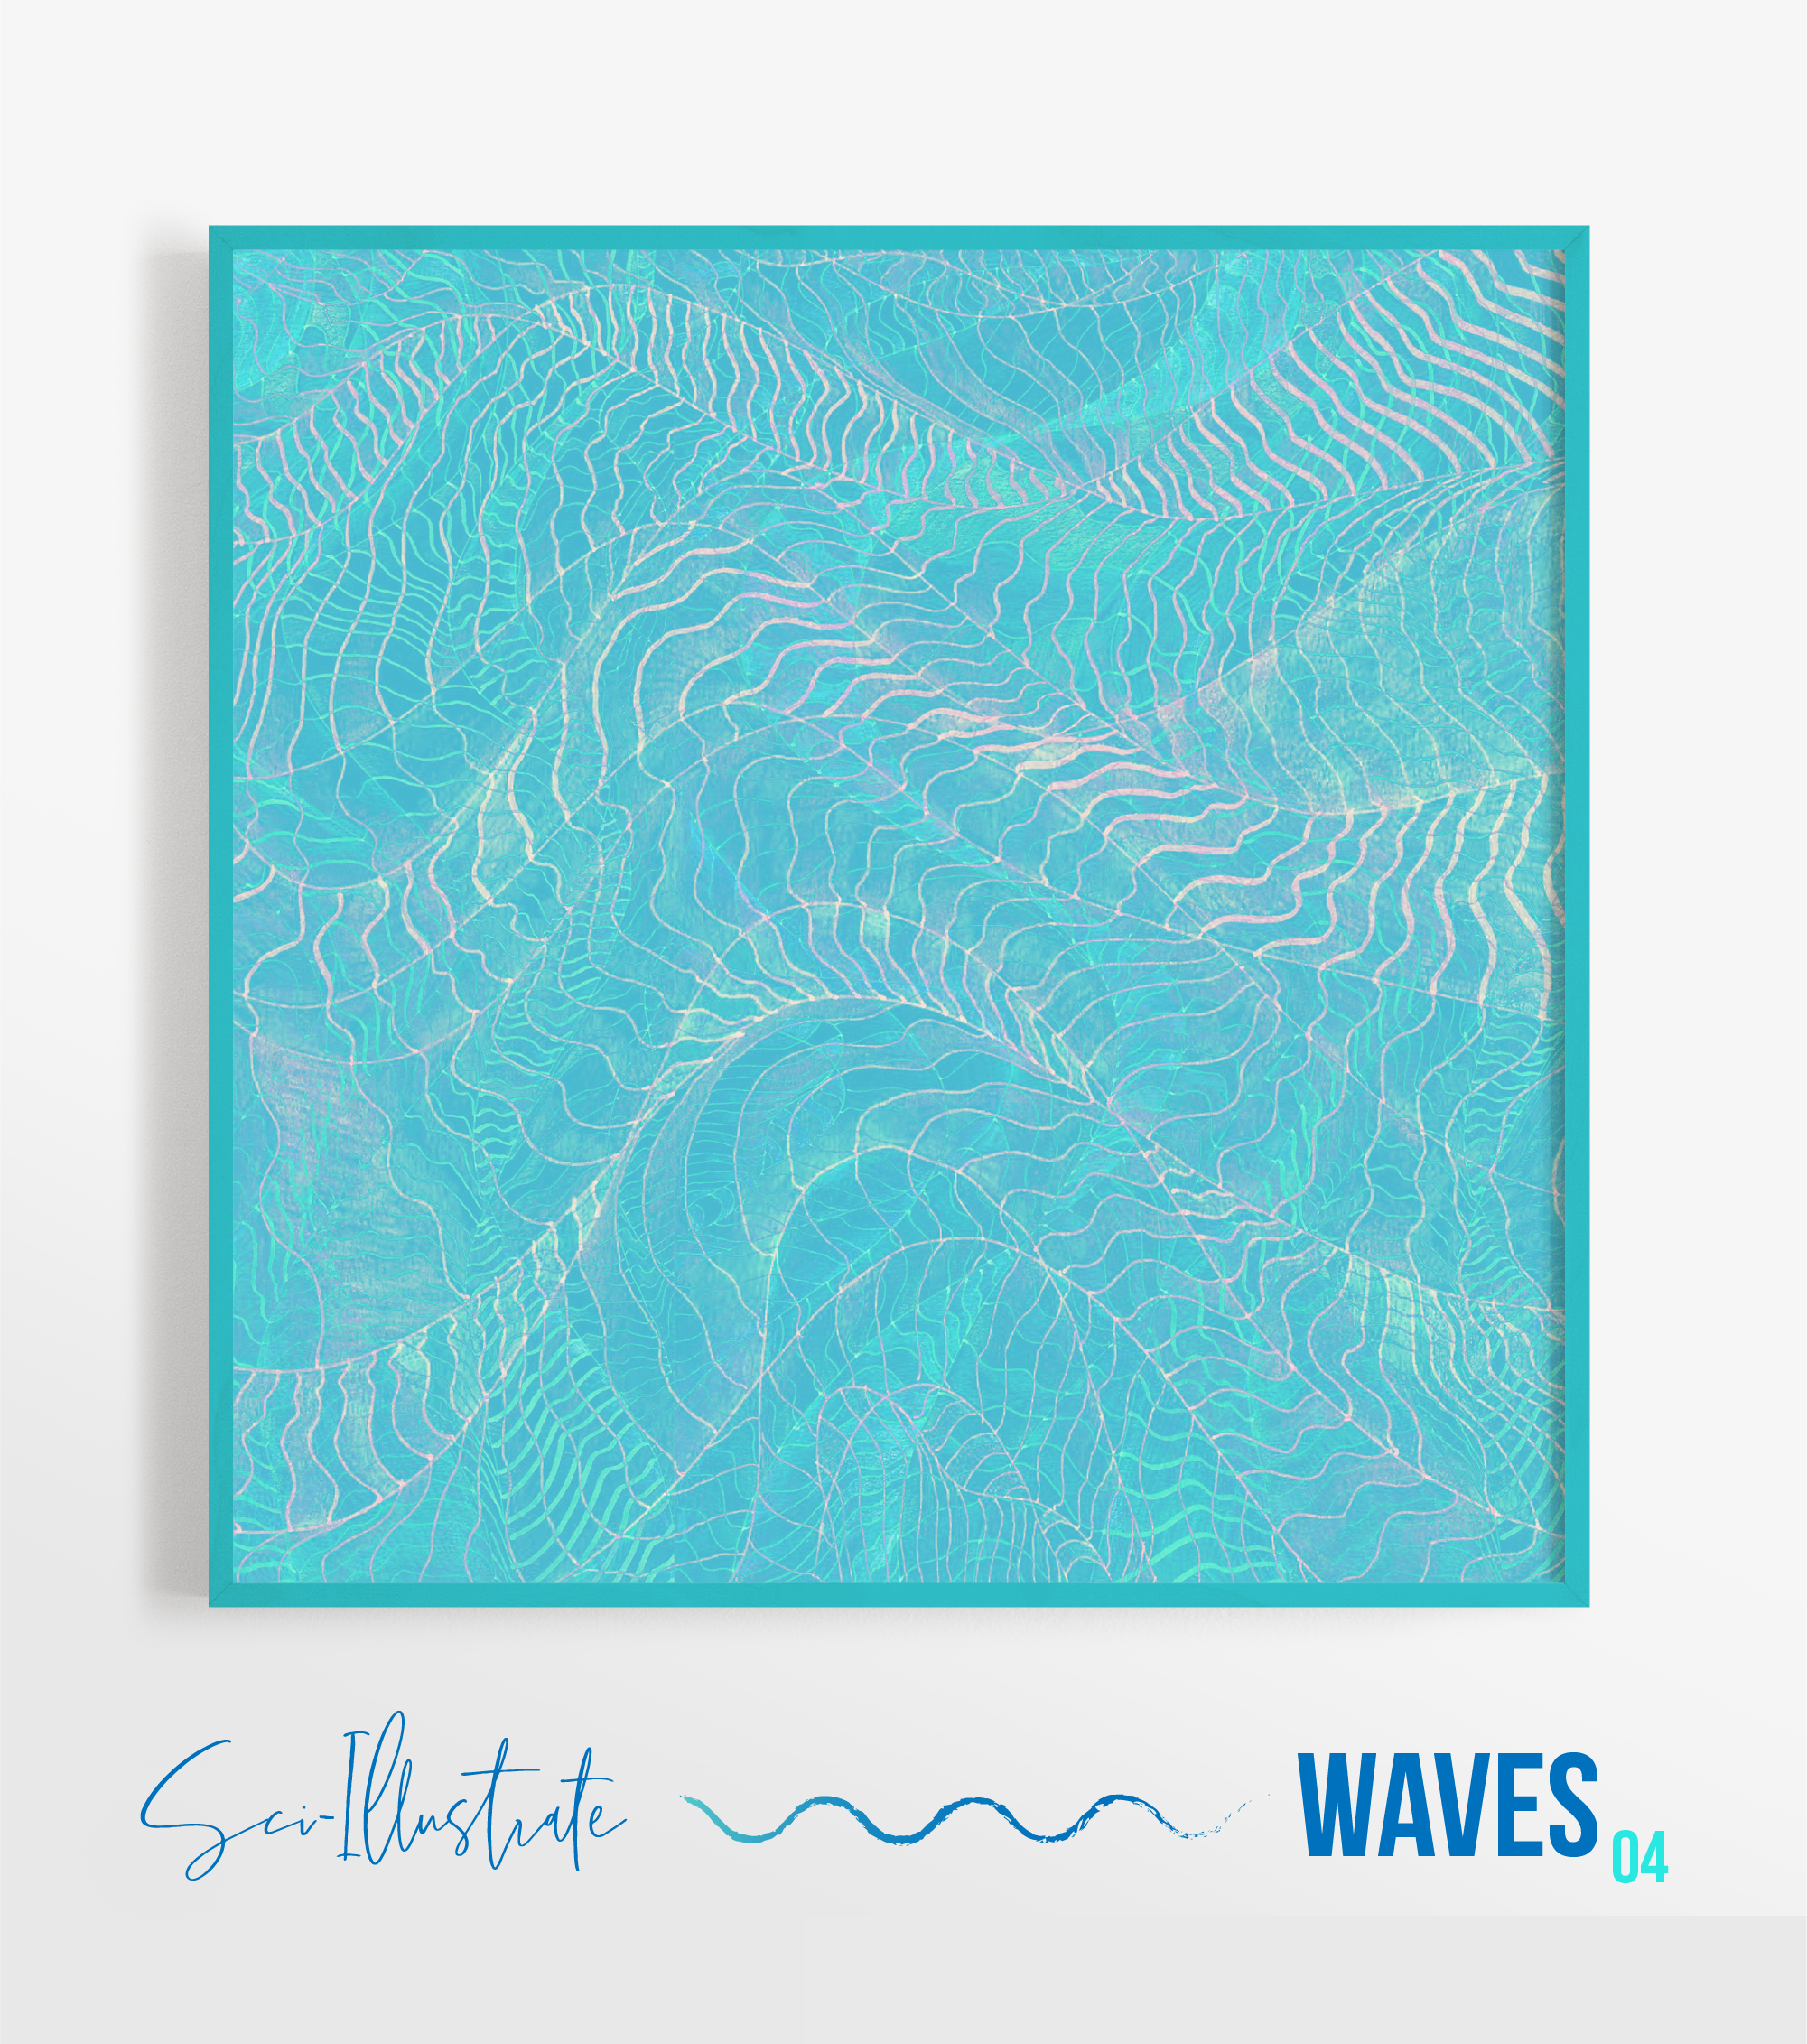 waves -SM 03-03.png